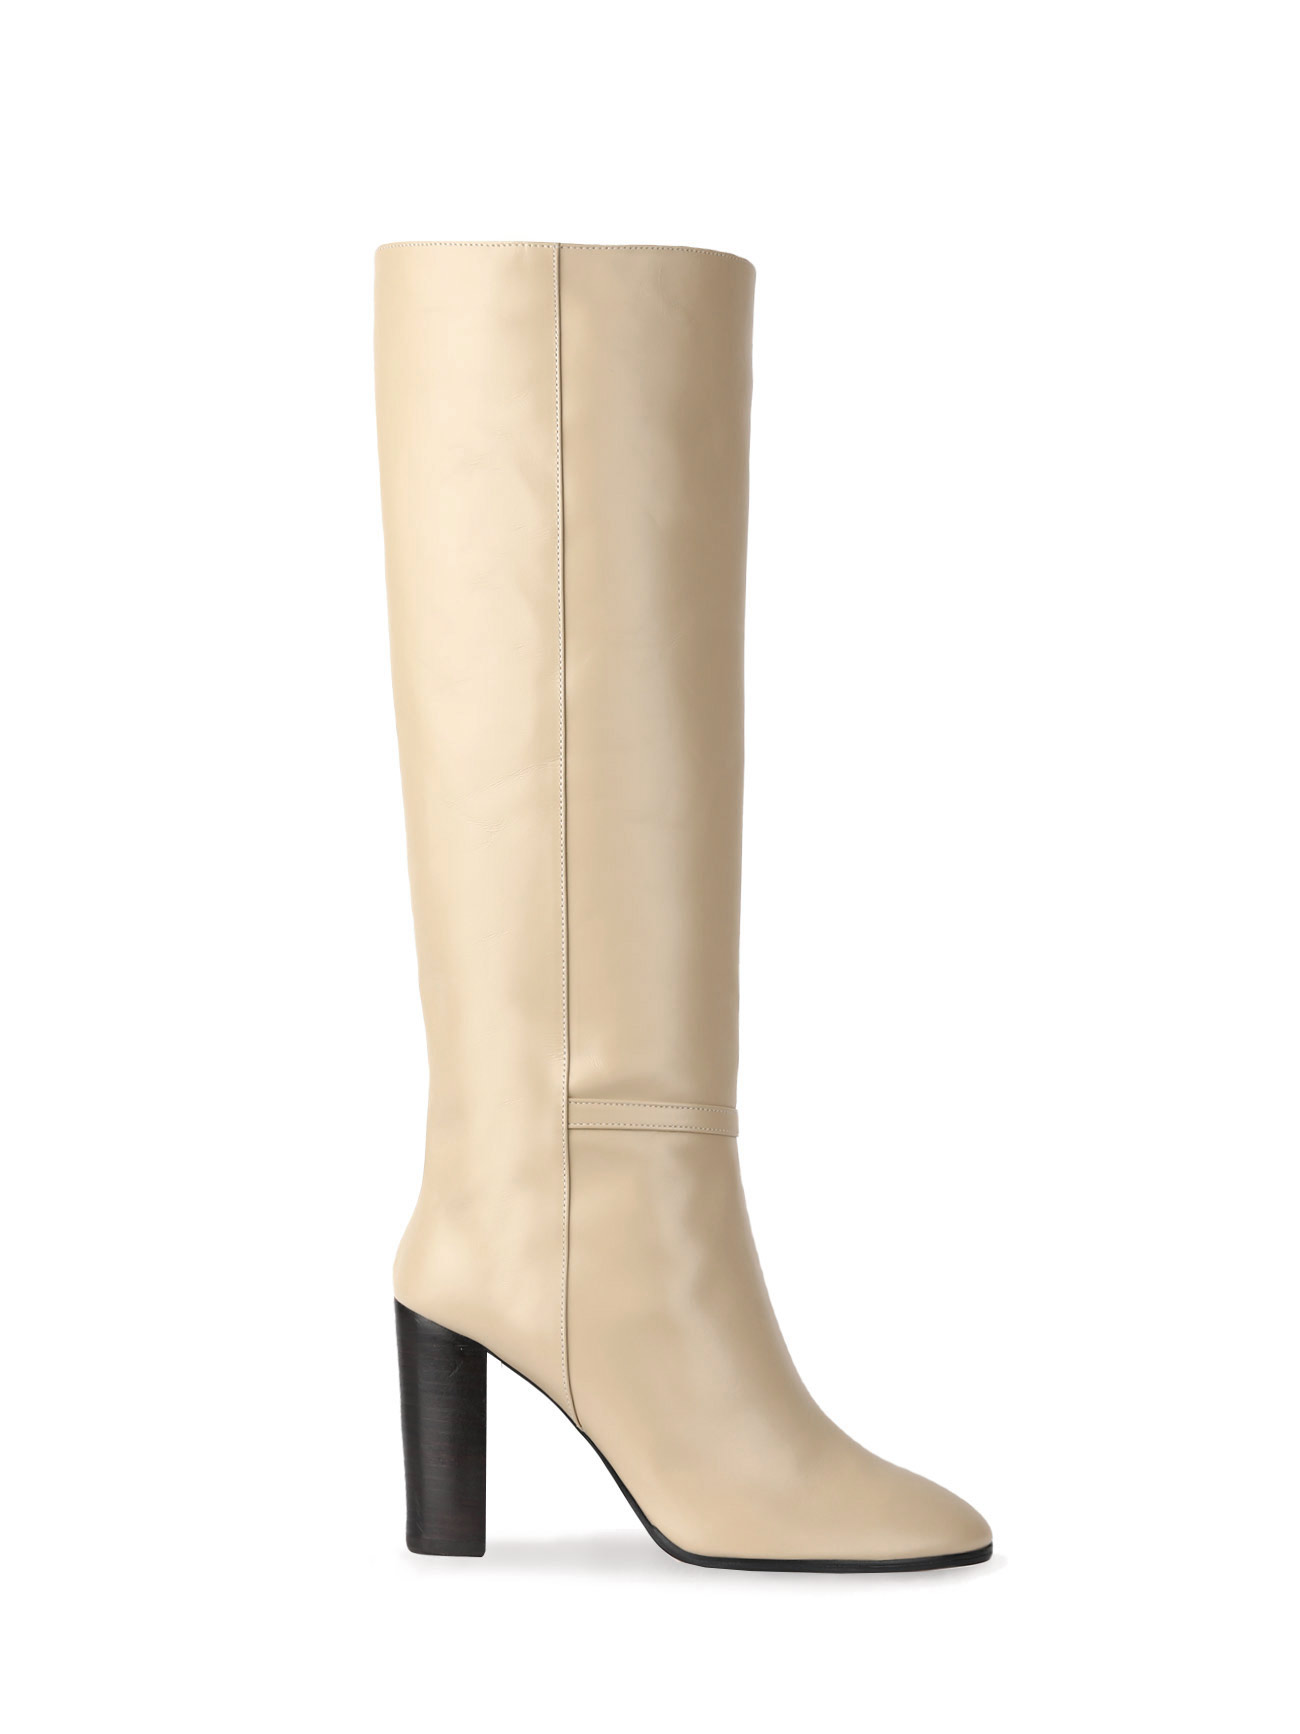 KATE LEATHER KNEE BOOTS (7cm, 9cm) - BEIGE